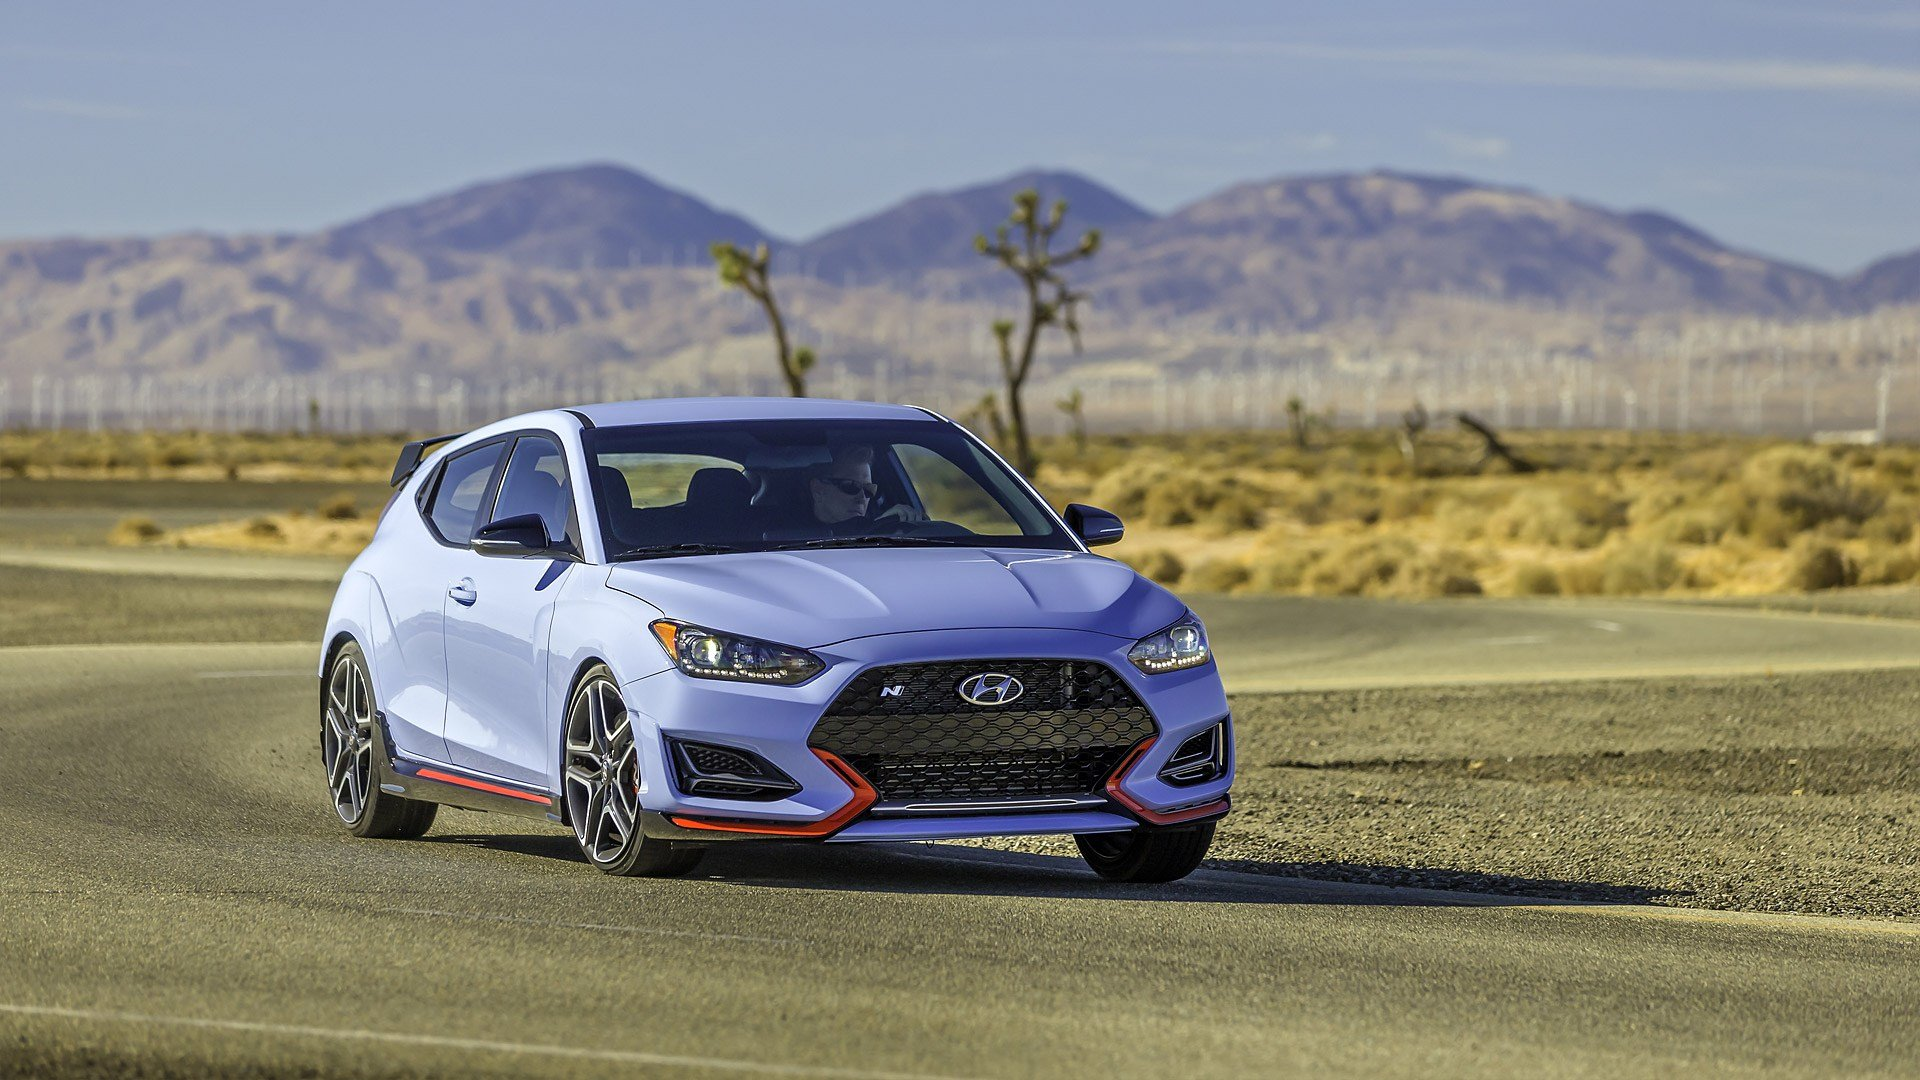 Latest 2019 Hyundai Veloster N Wallpapers Hd Images Wsupercars Free Download